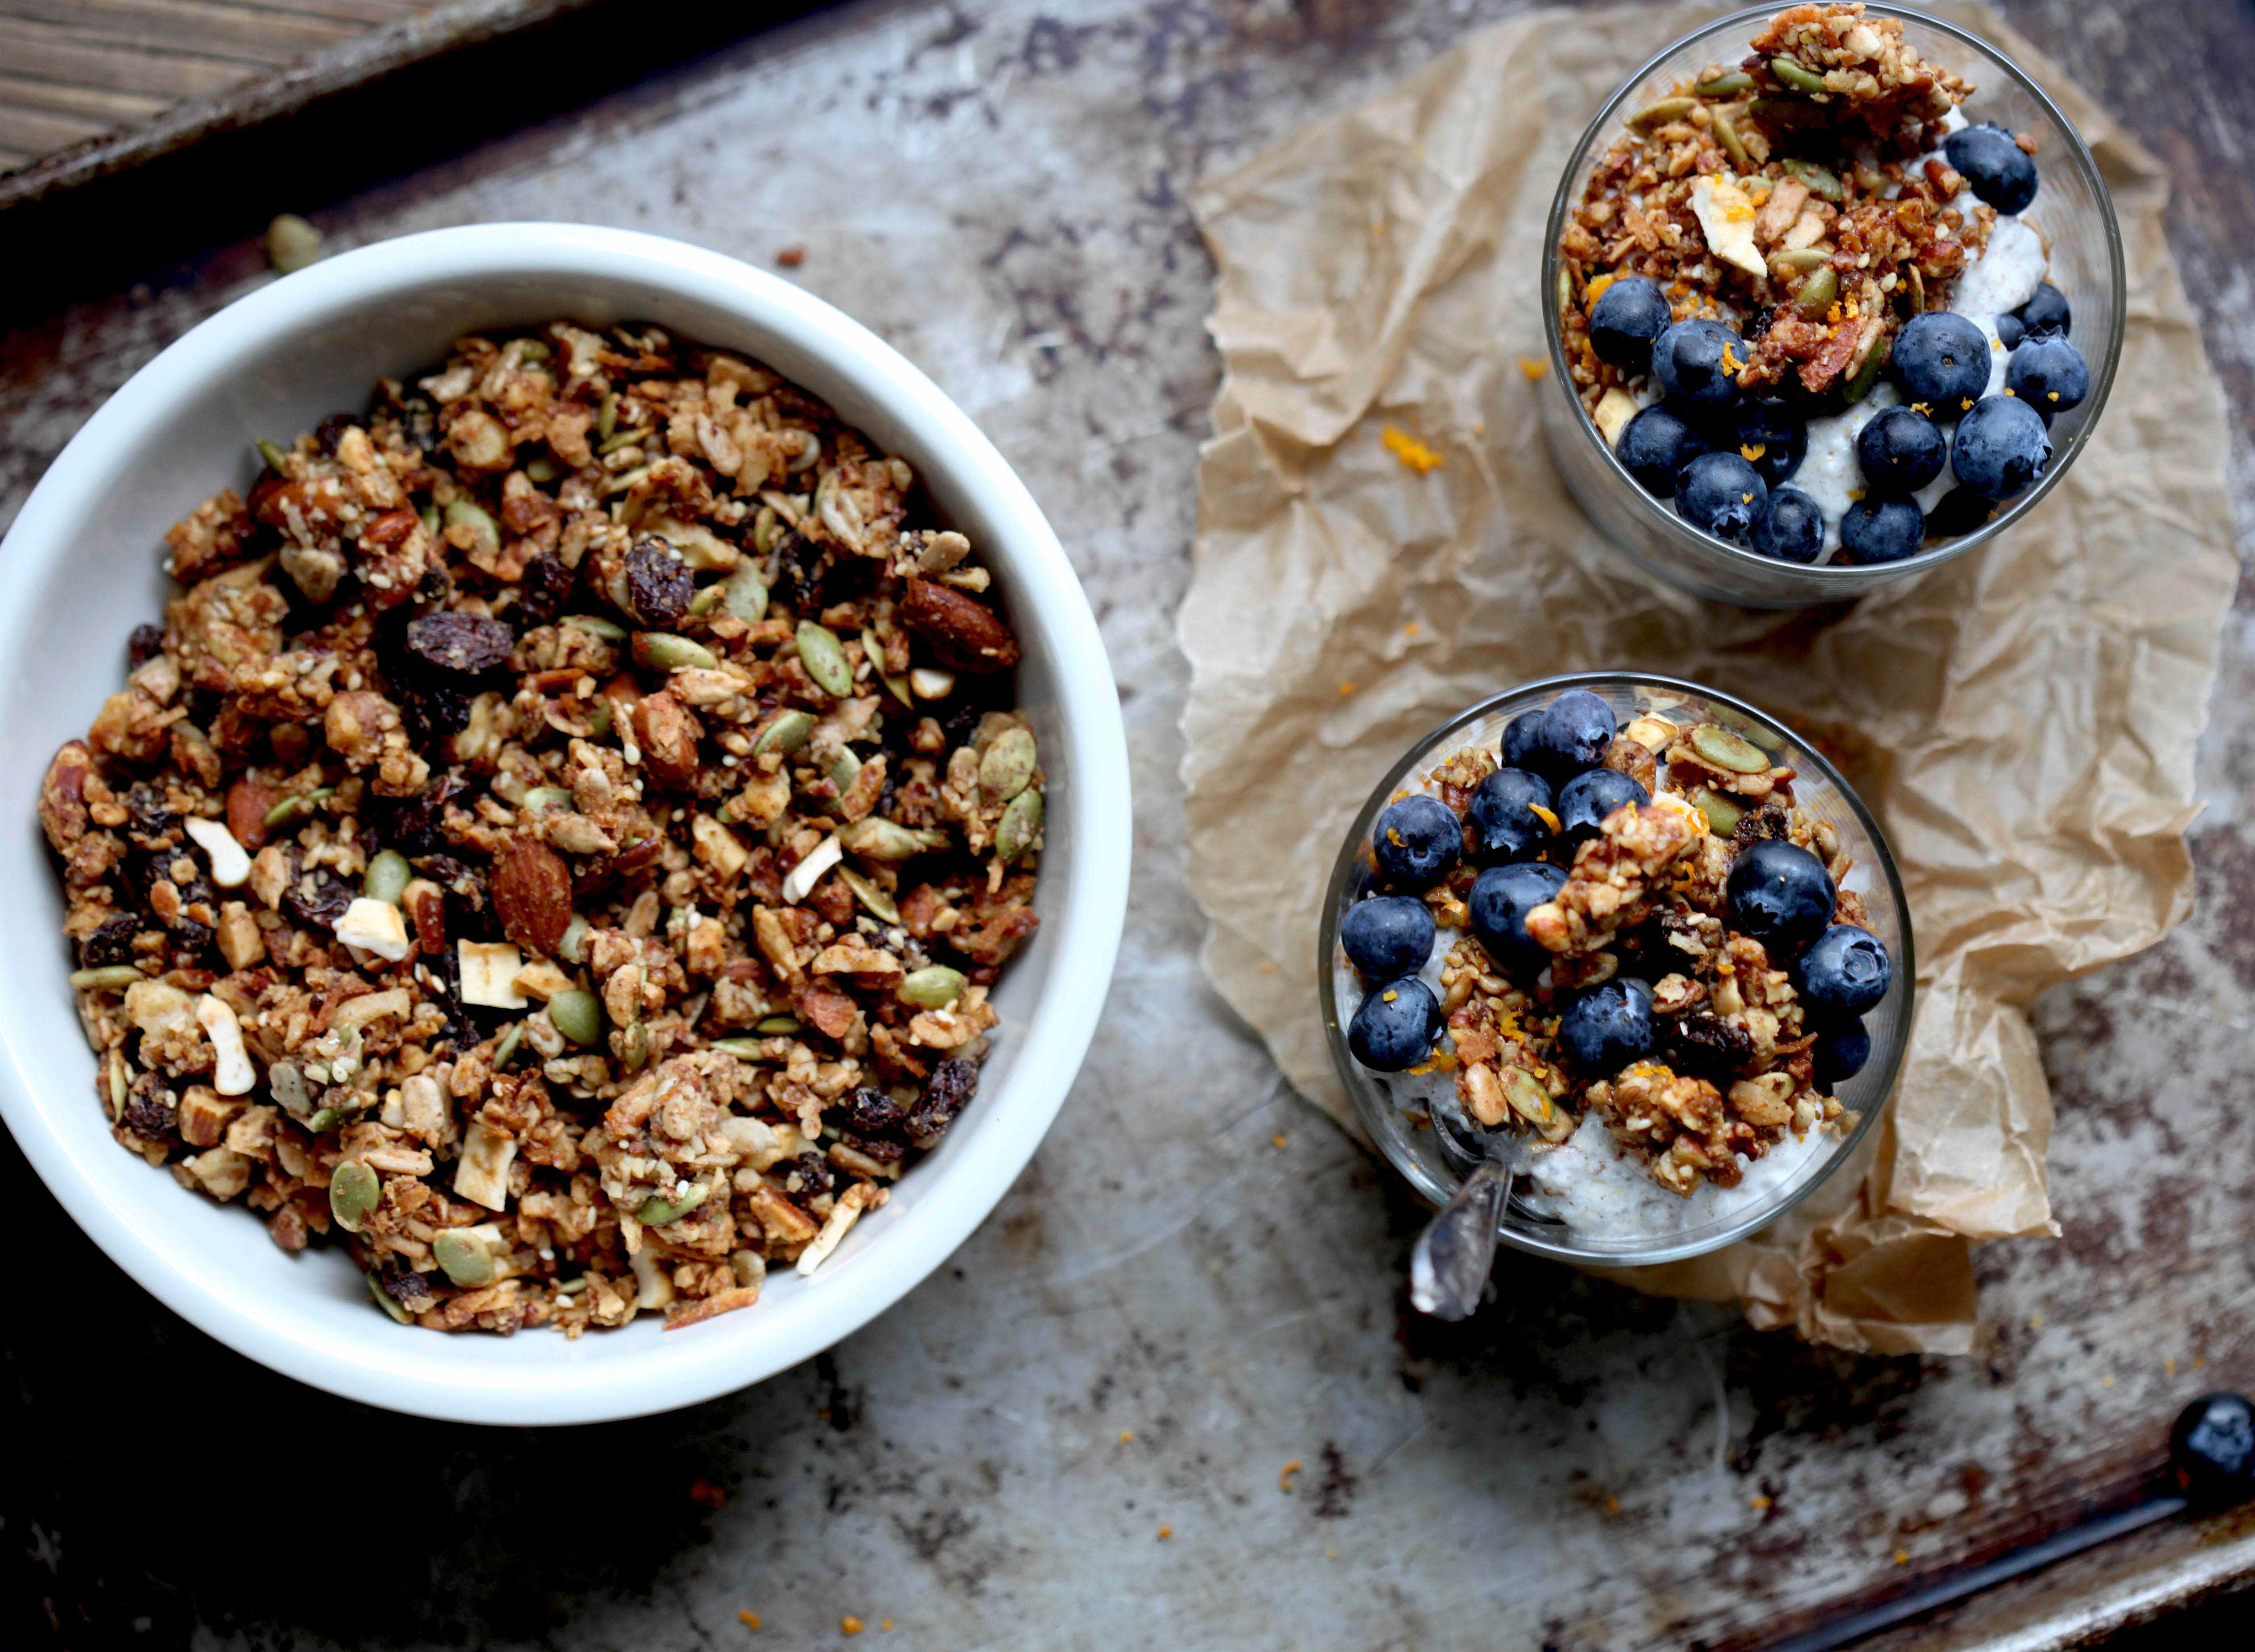 Gluten-Free Superfood Cereal